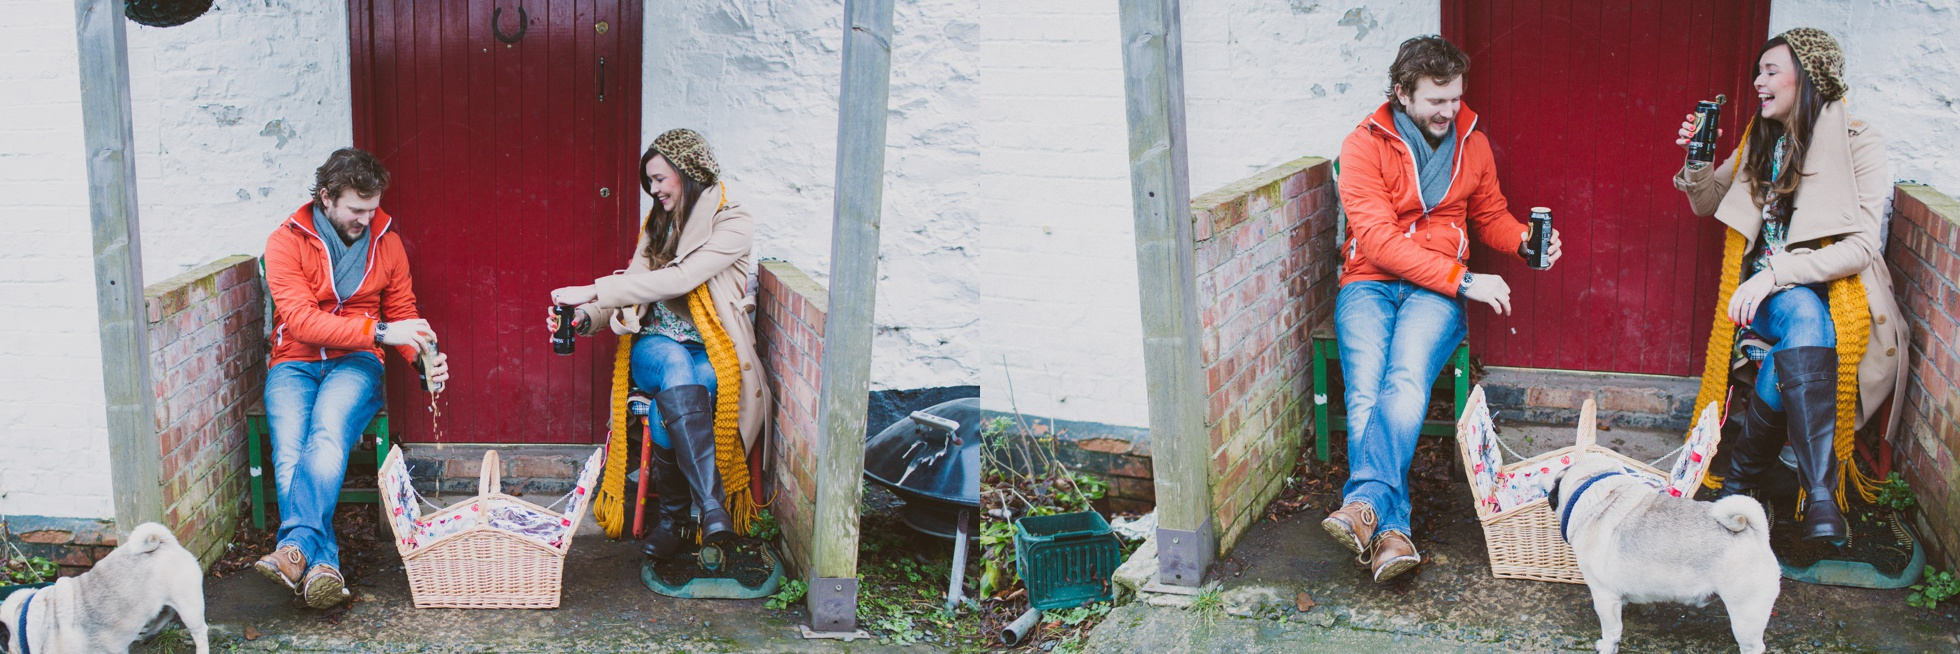 Allotment Engagement Photography Northern Ireland